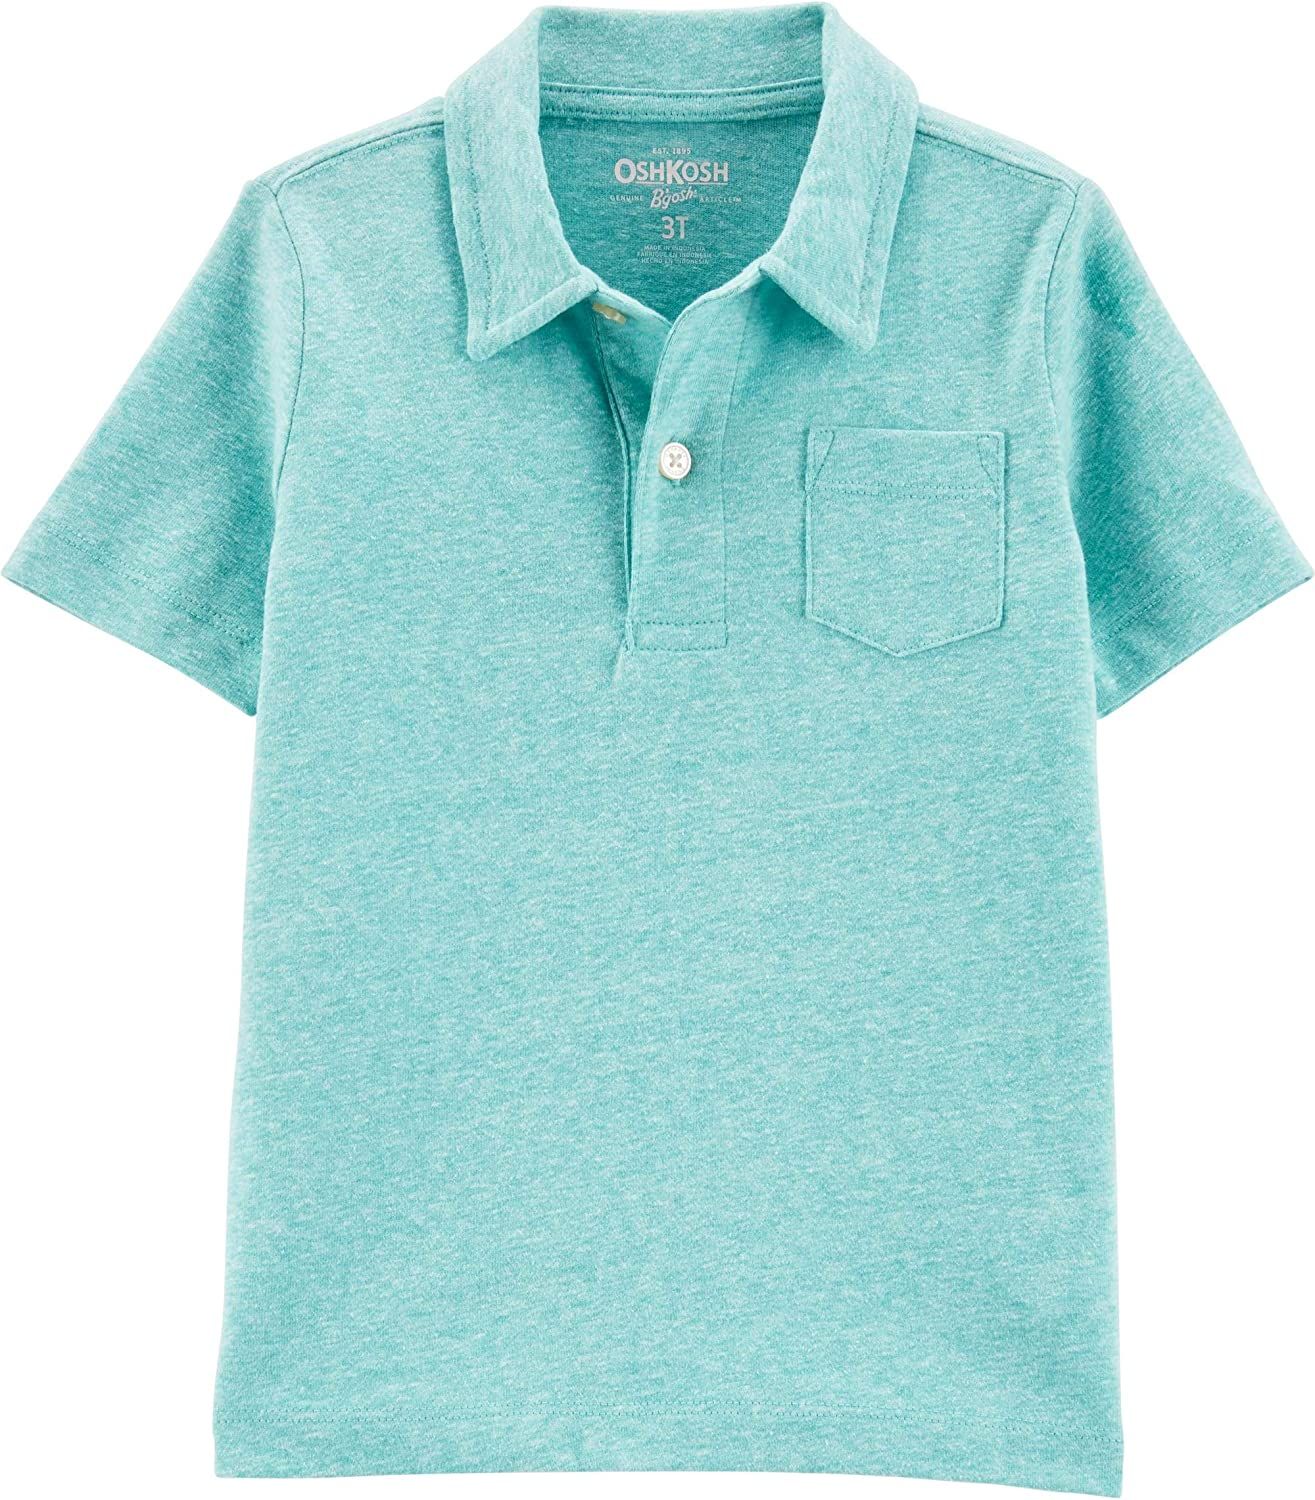 OshKosh BGosh Boys Toddler Short-Sleeve Polo Shirt